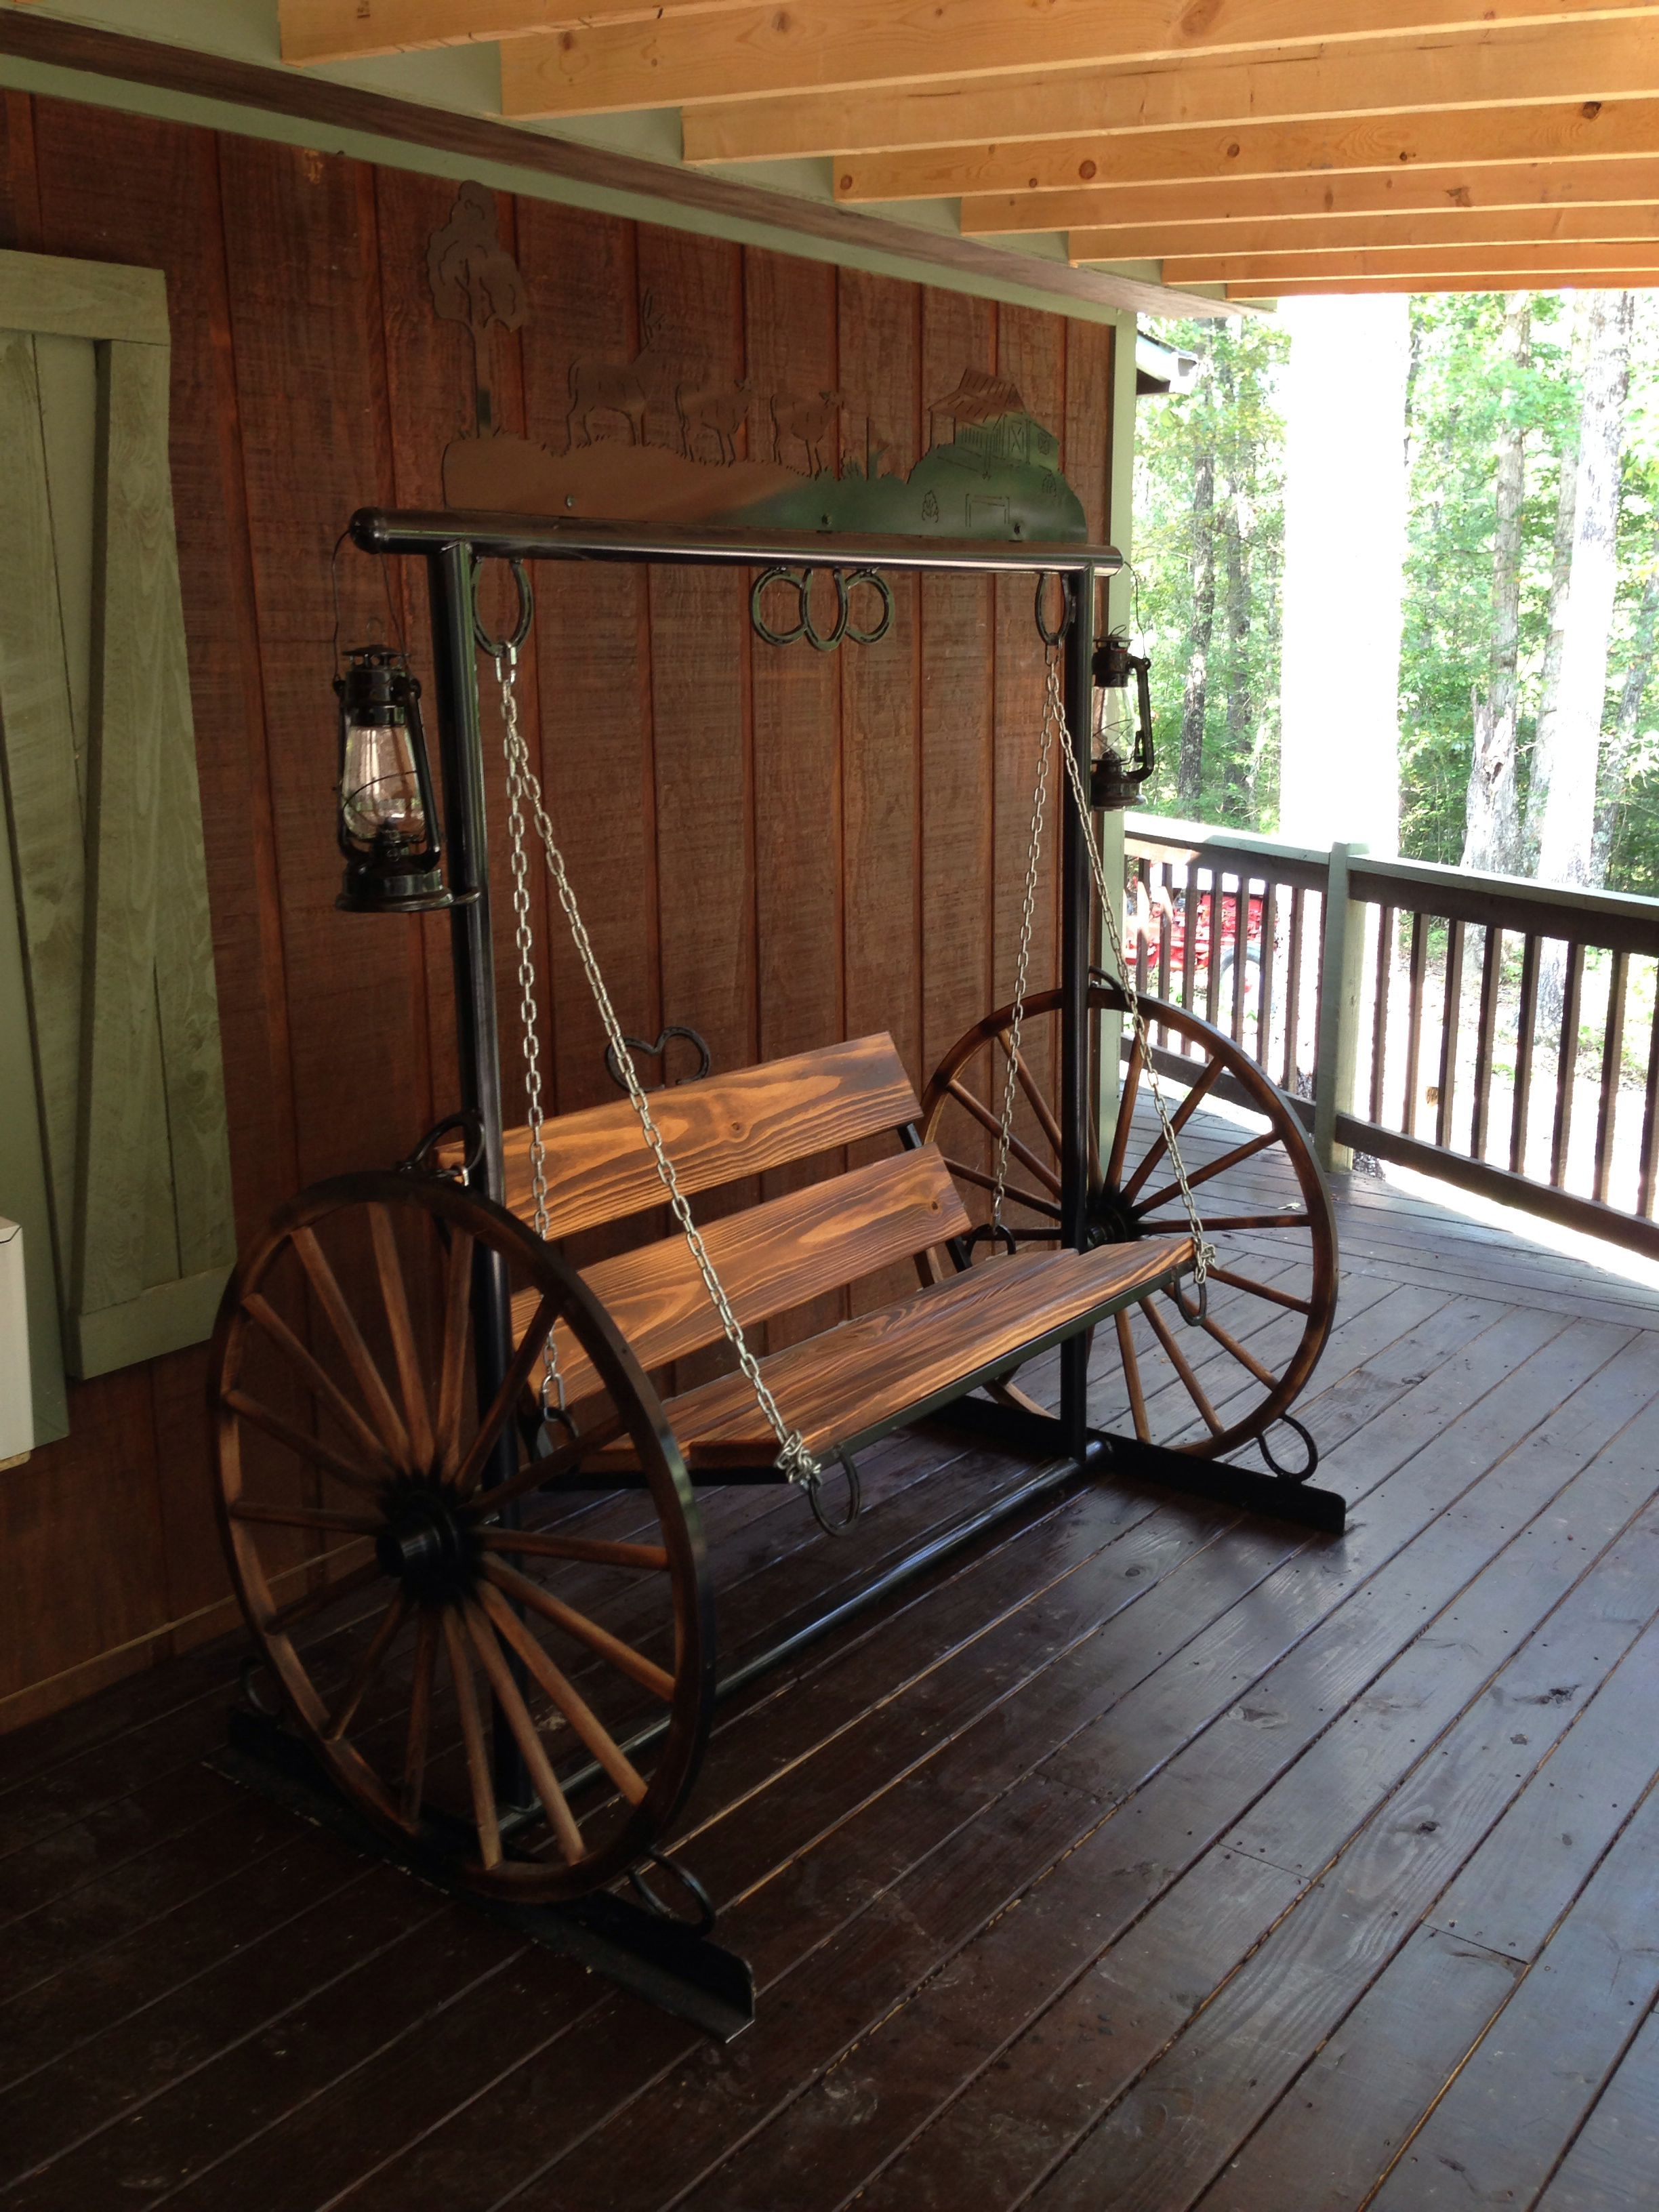 Porch Swing With Wagon Wheel Sides And Working Kerosene